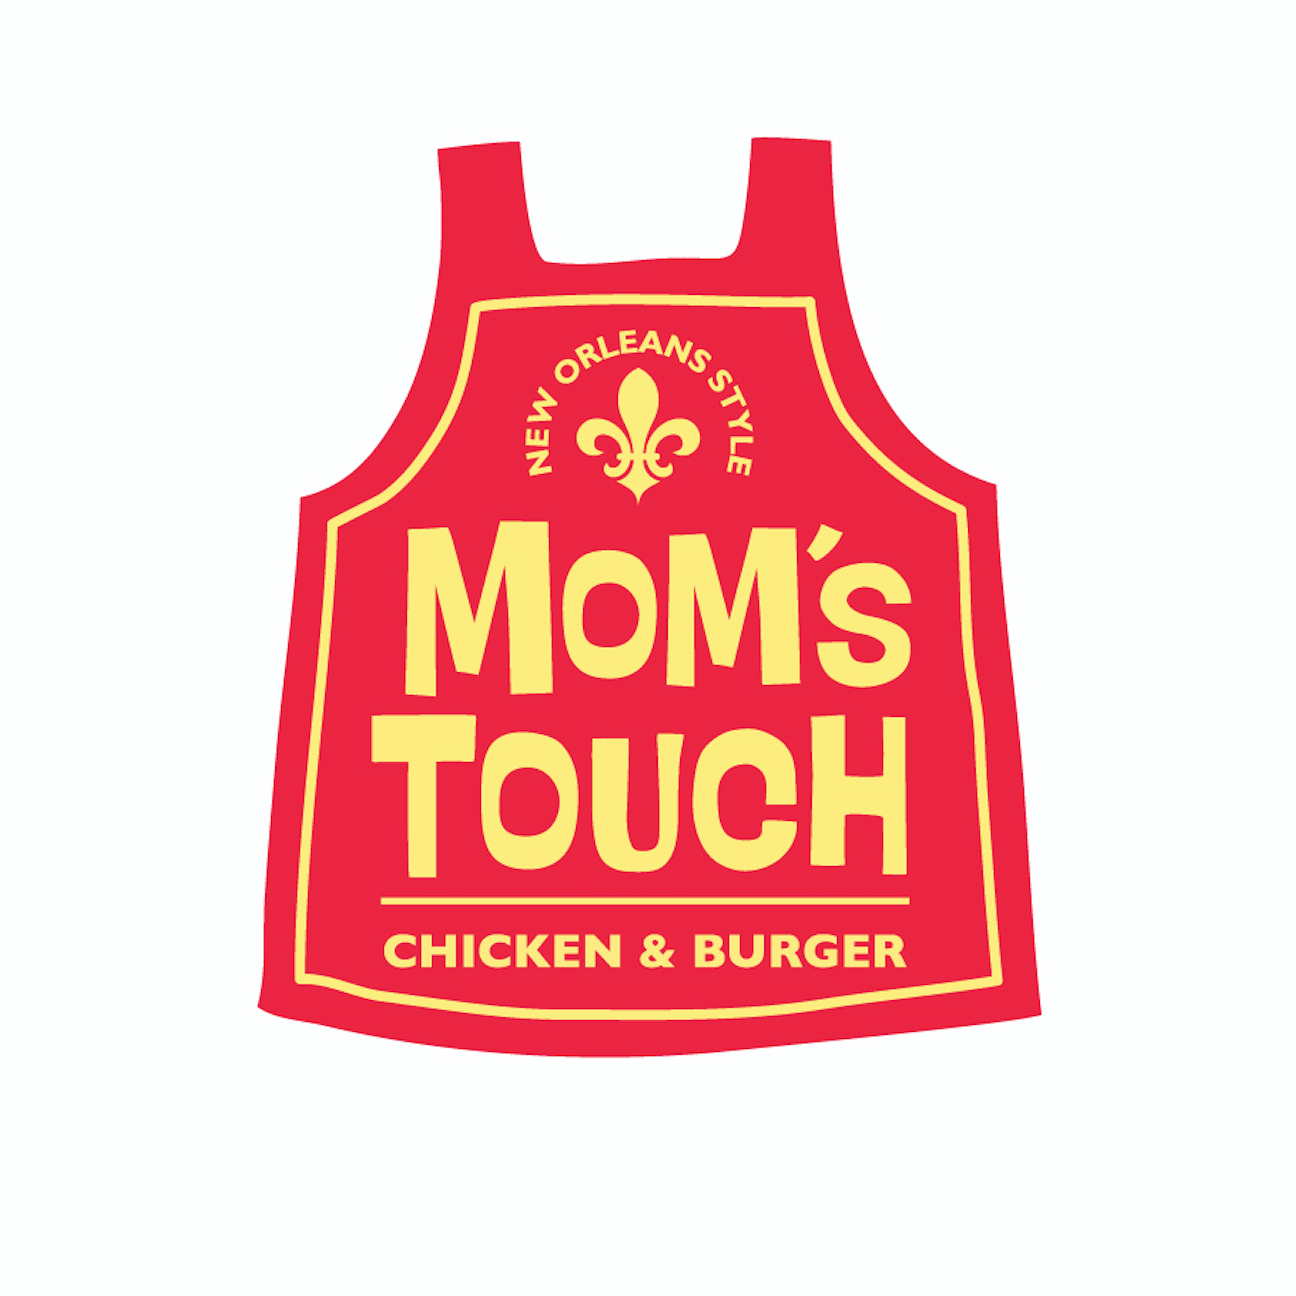 moms touch logo